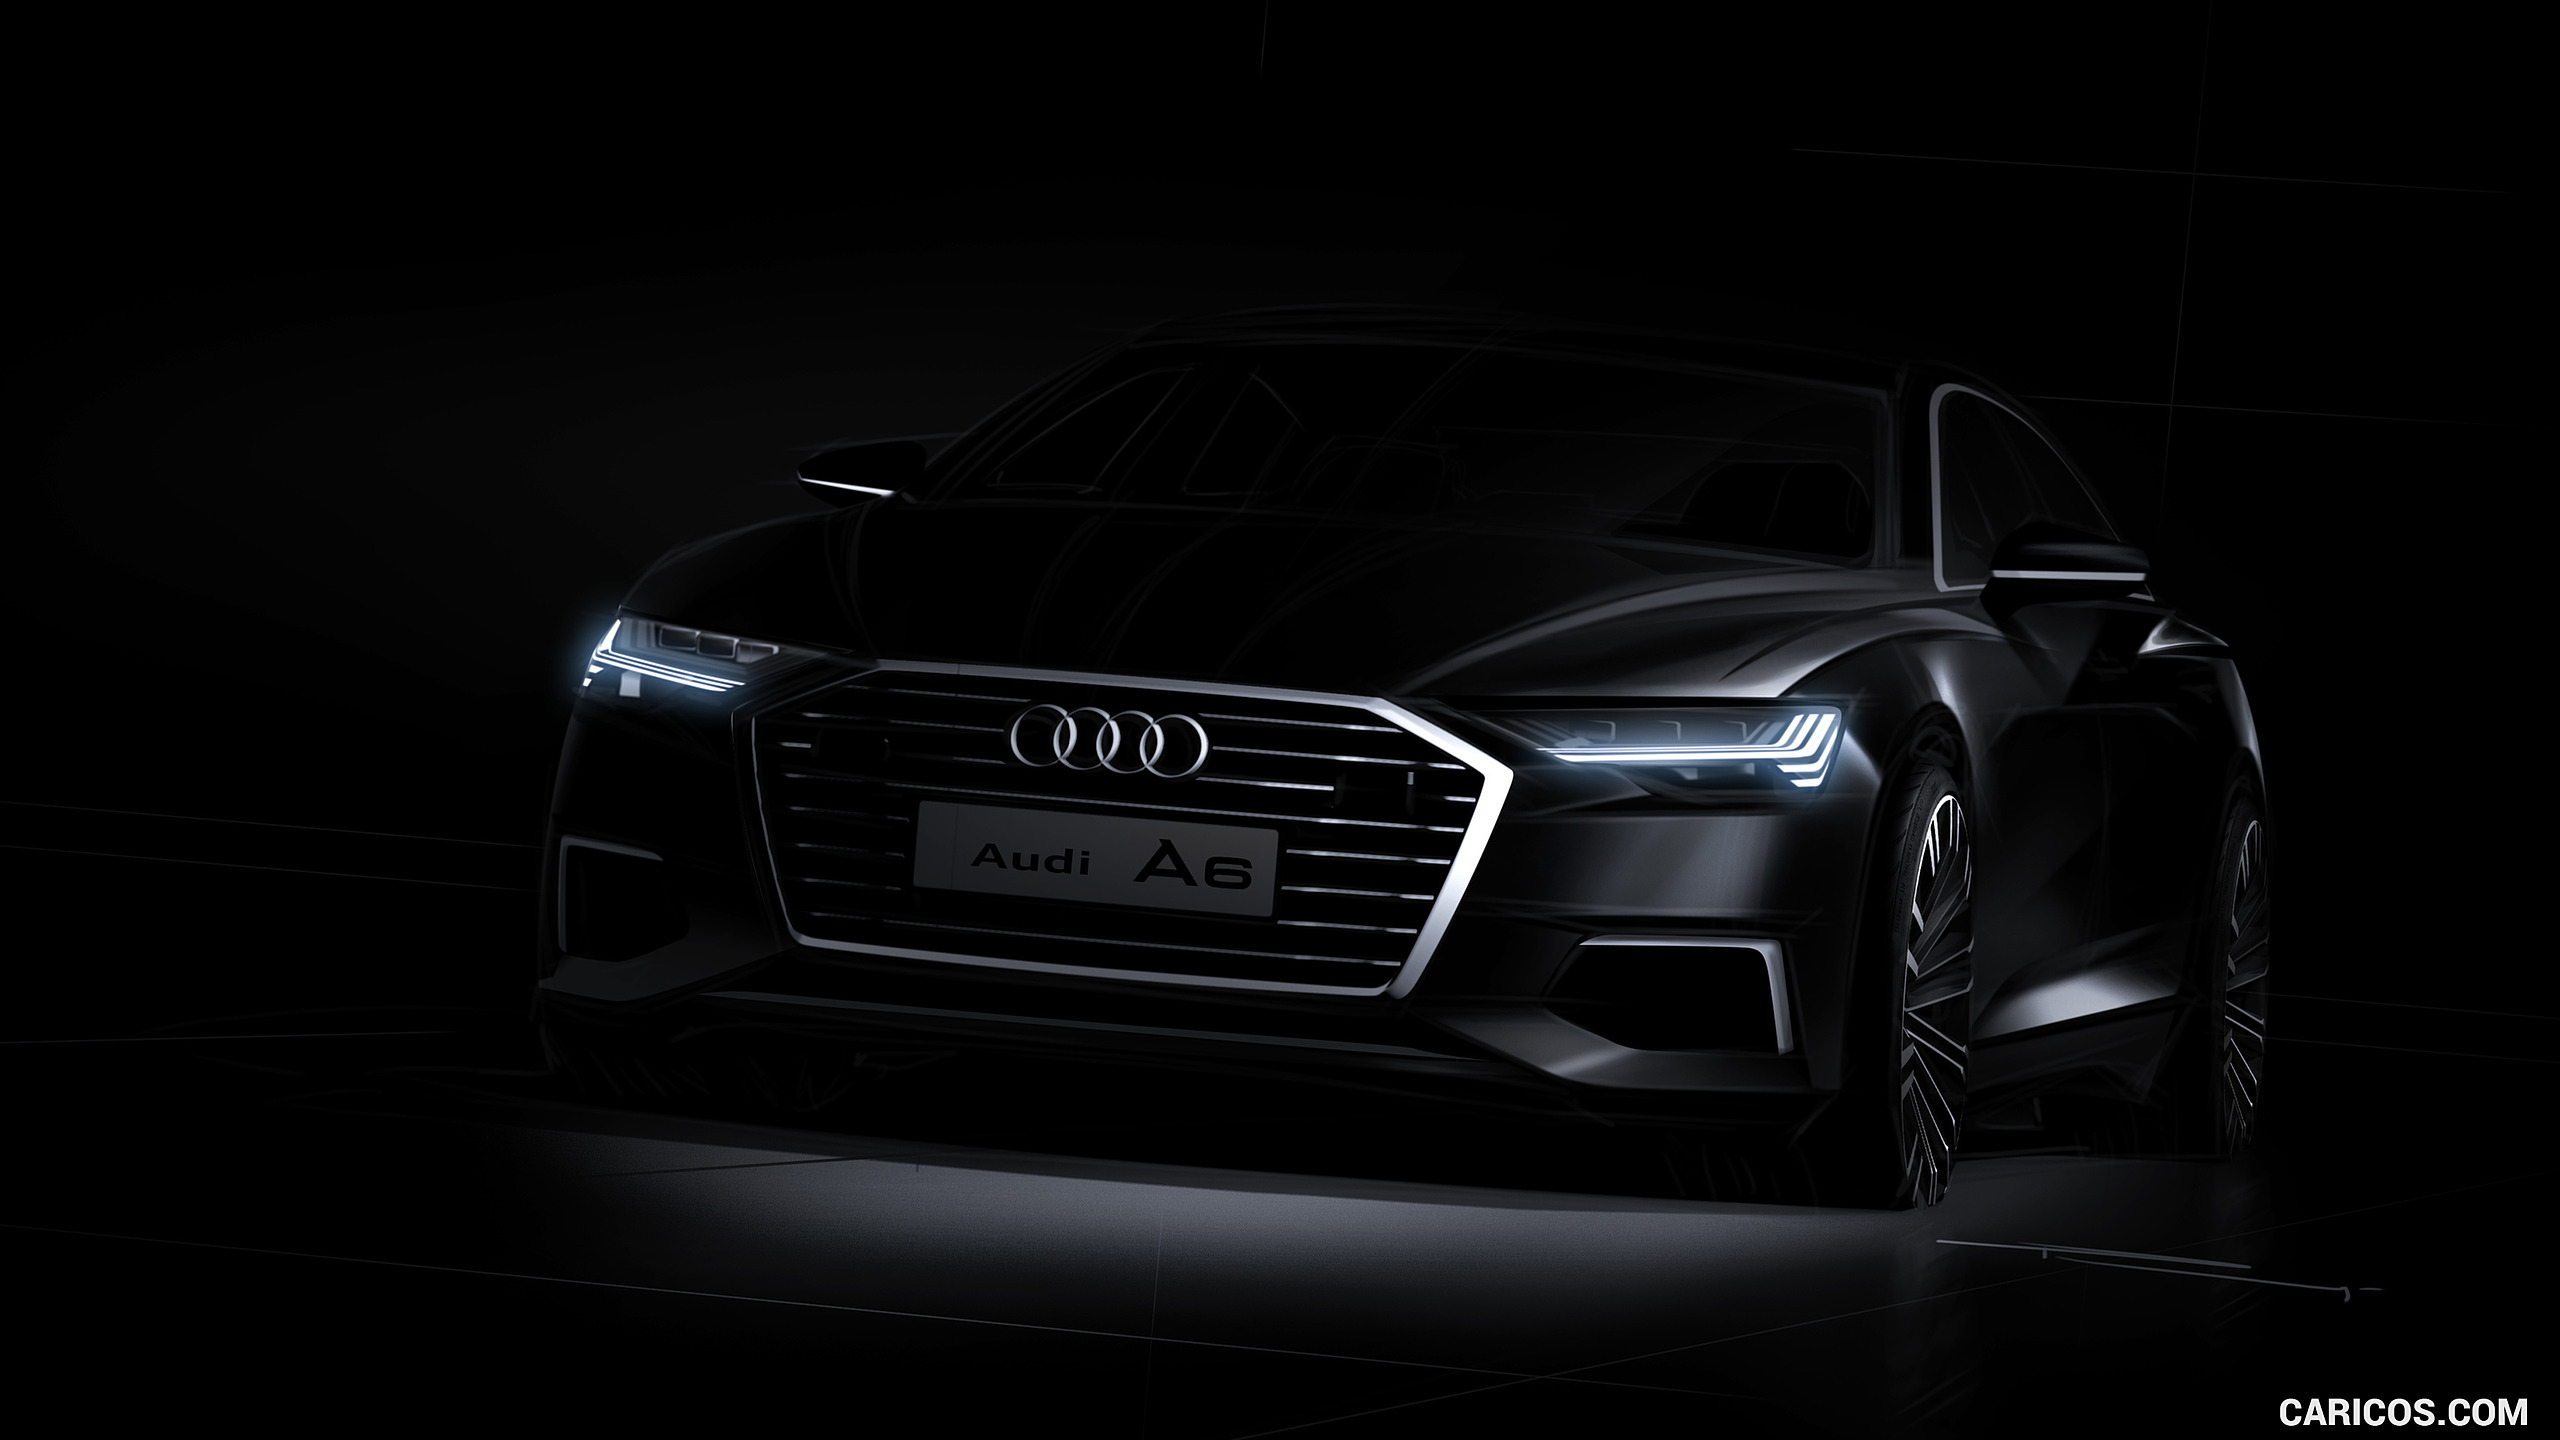 2560x1440 - Audi A6 Wallpapers 1